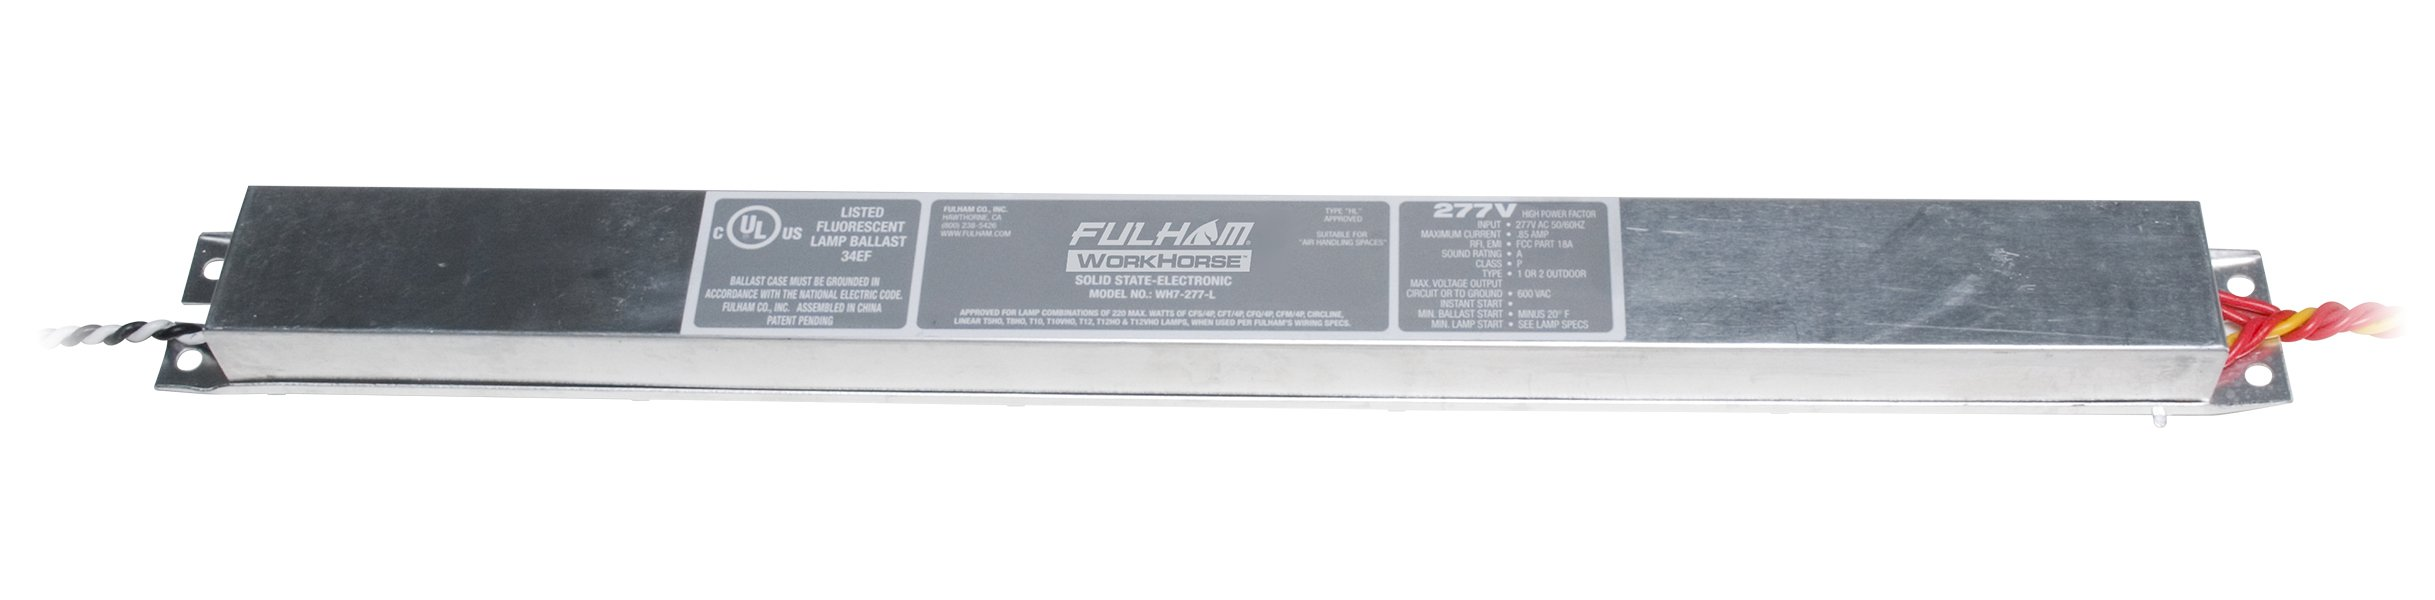 Fulham WH7-277-L Workhorse Adaptable Ballast